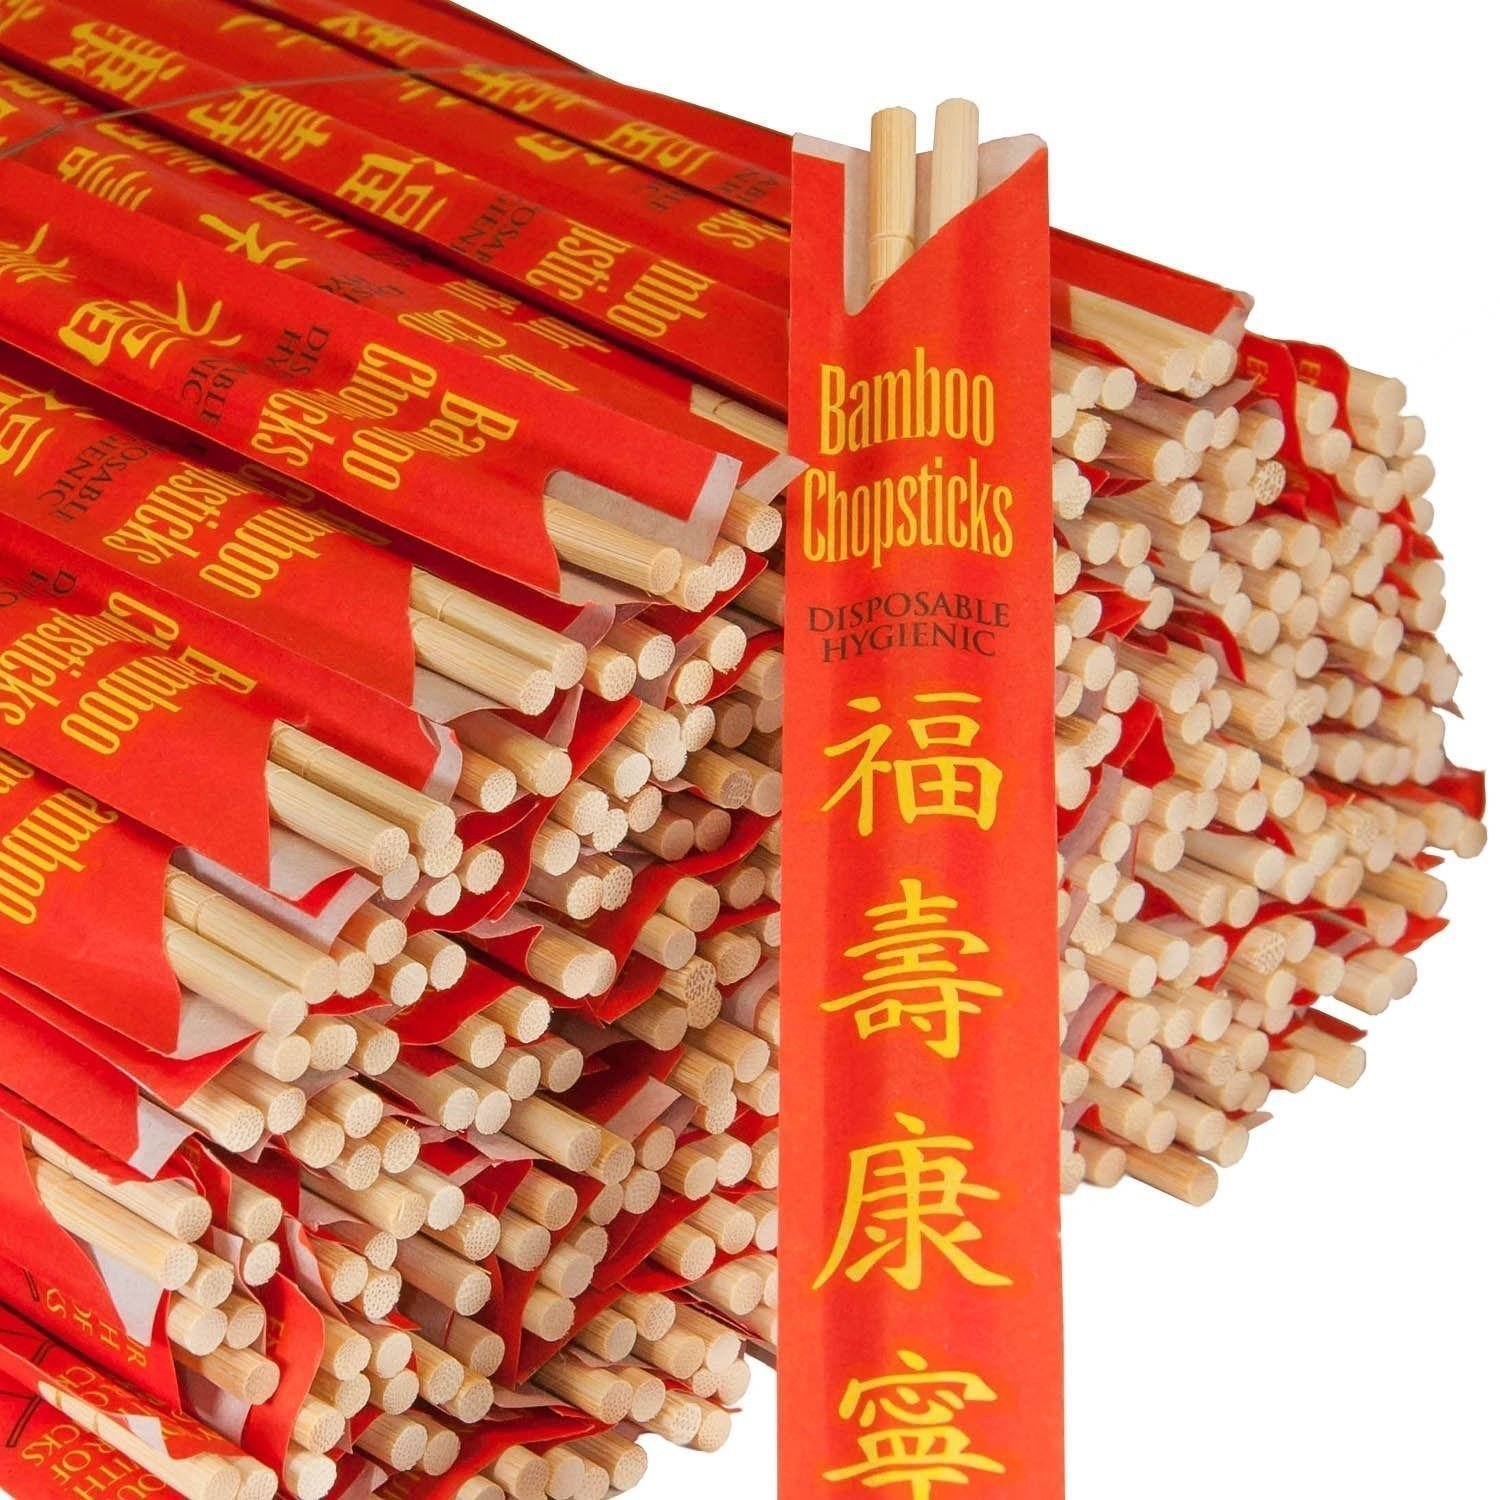 RG Paper Premium Disposable Bamboo Chopsticks Sleeved and Seperated (200)